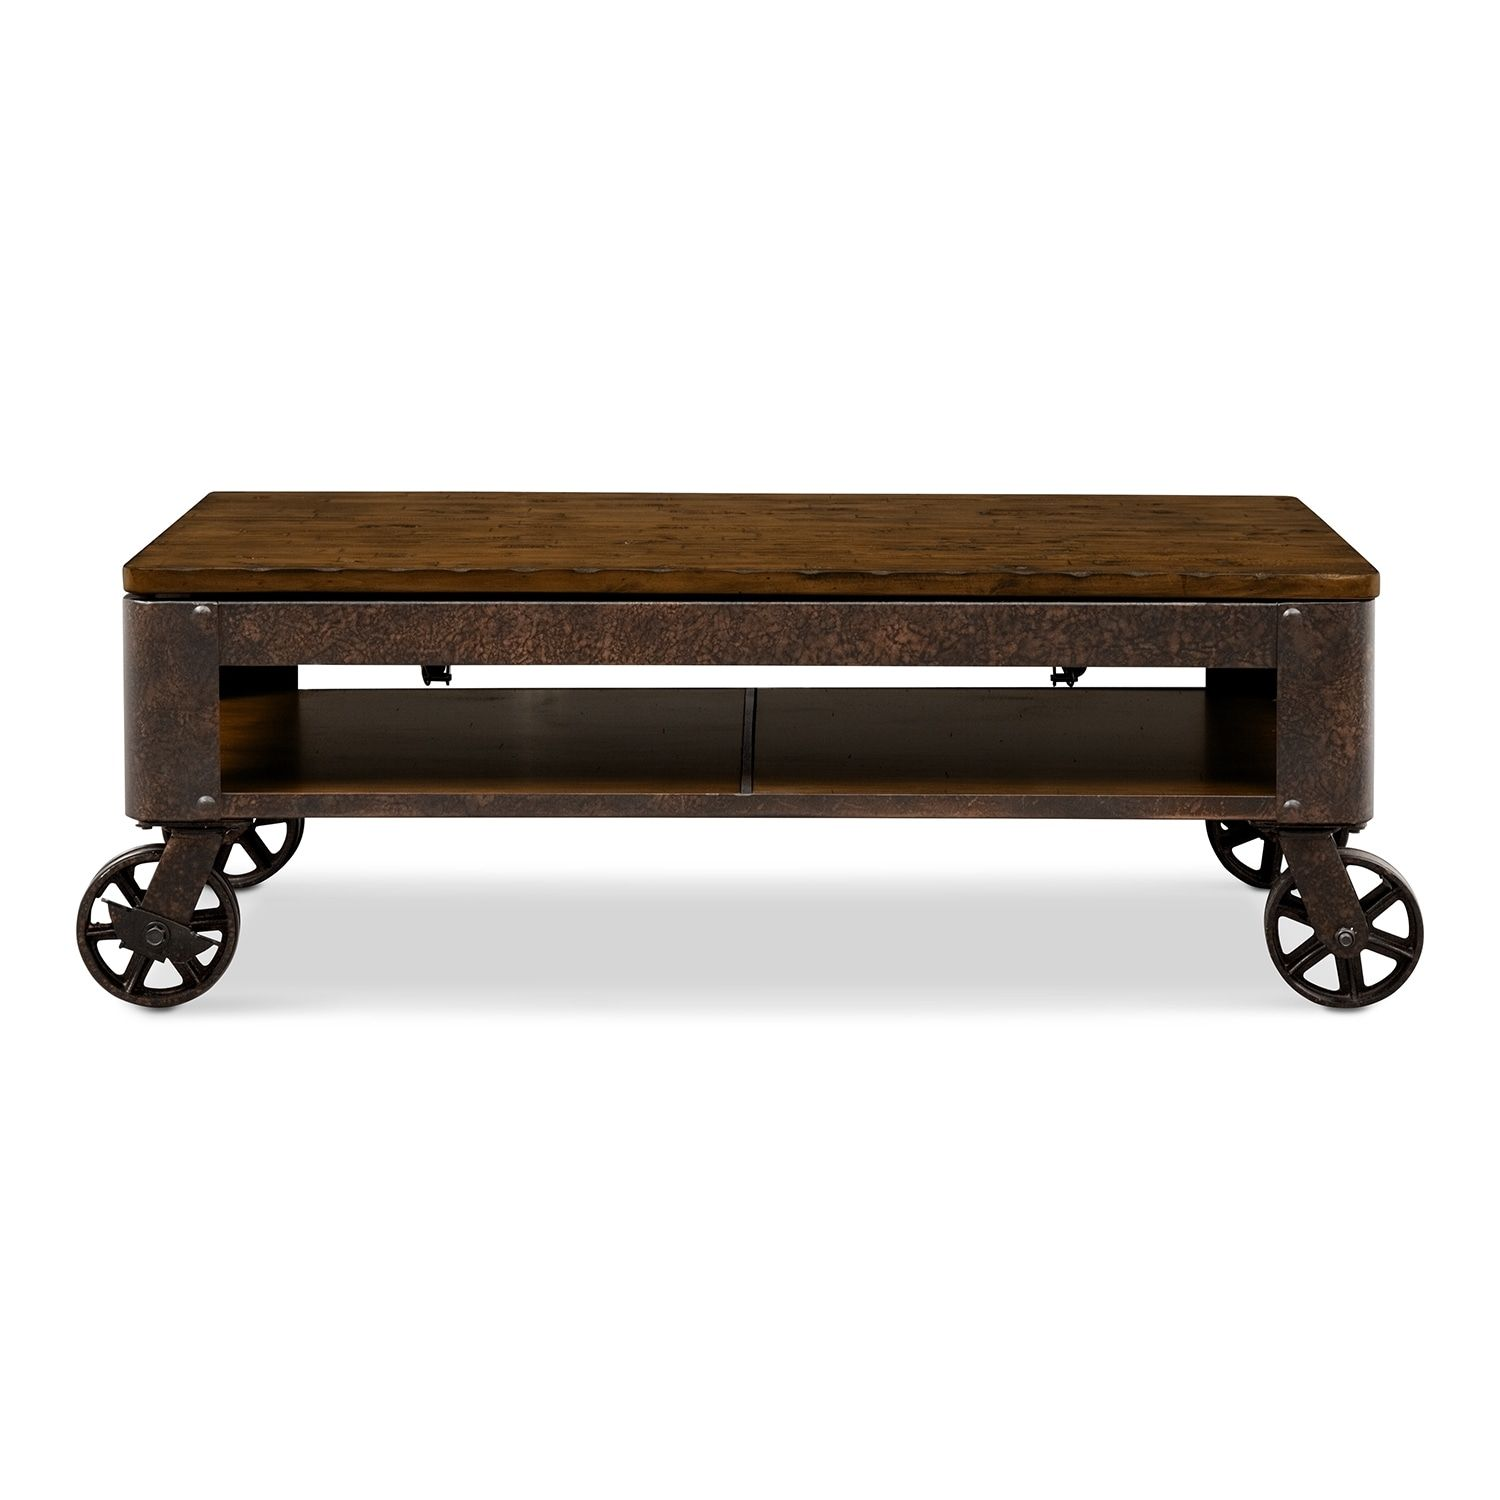 The Shortline Collection Distressed Pine Value City Furniture And Mattresses Rustic Wooden Coffee Table Coffee Table Coffee Table With Wheels [ 1500 x 1500 Pixel ]